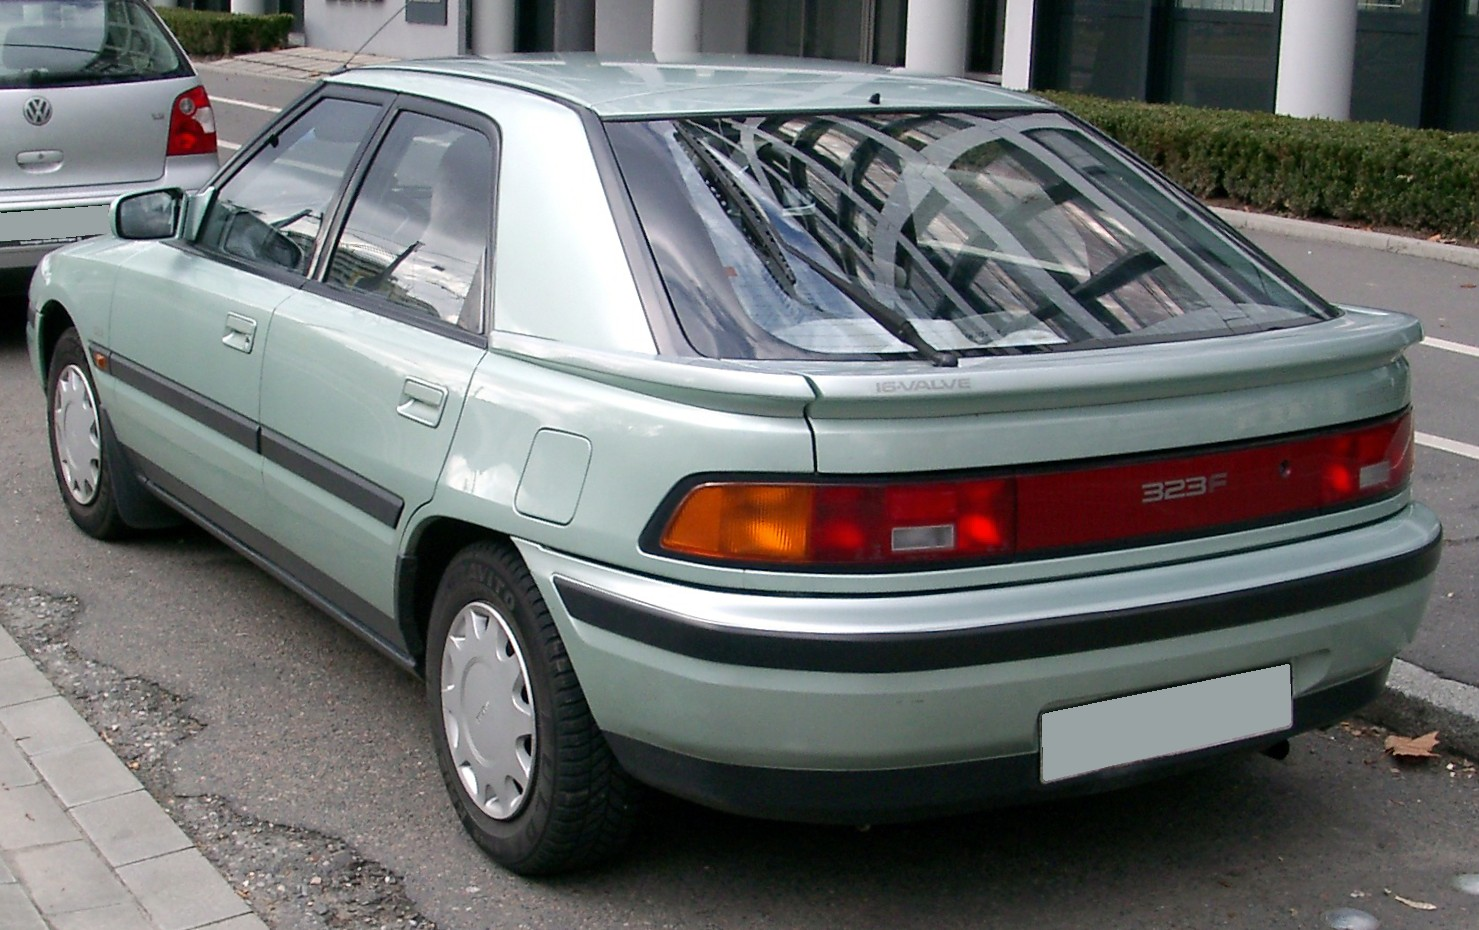 Mazda 323f 1989 Review Amazing Pictures And Images Look At The Car